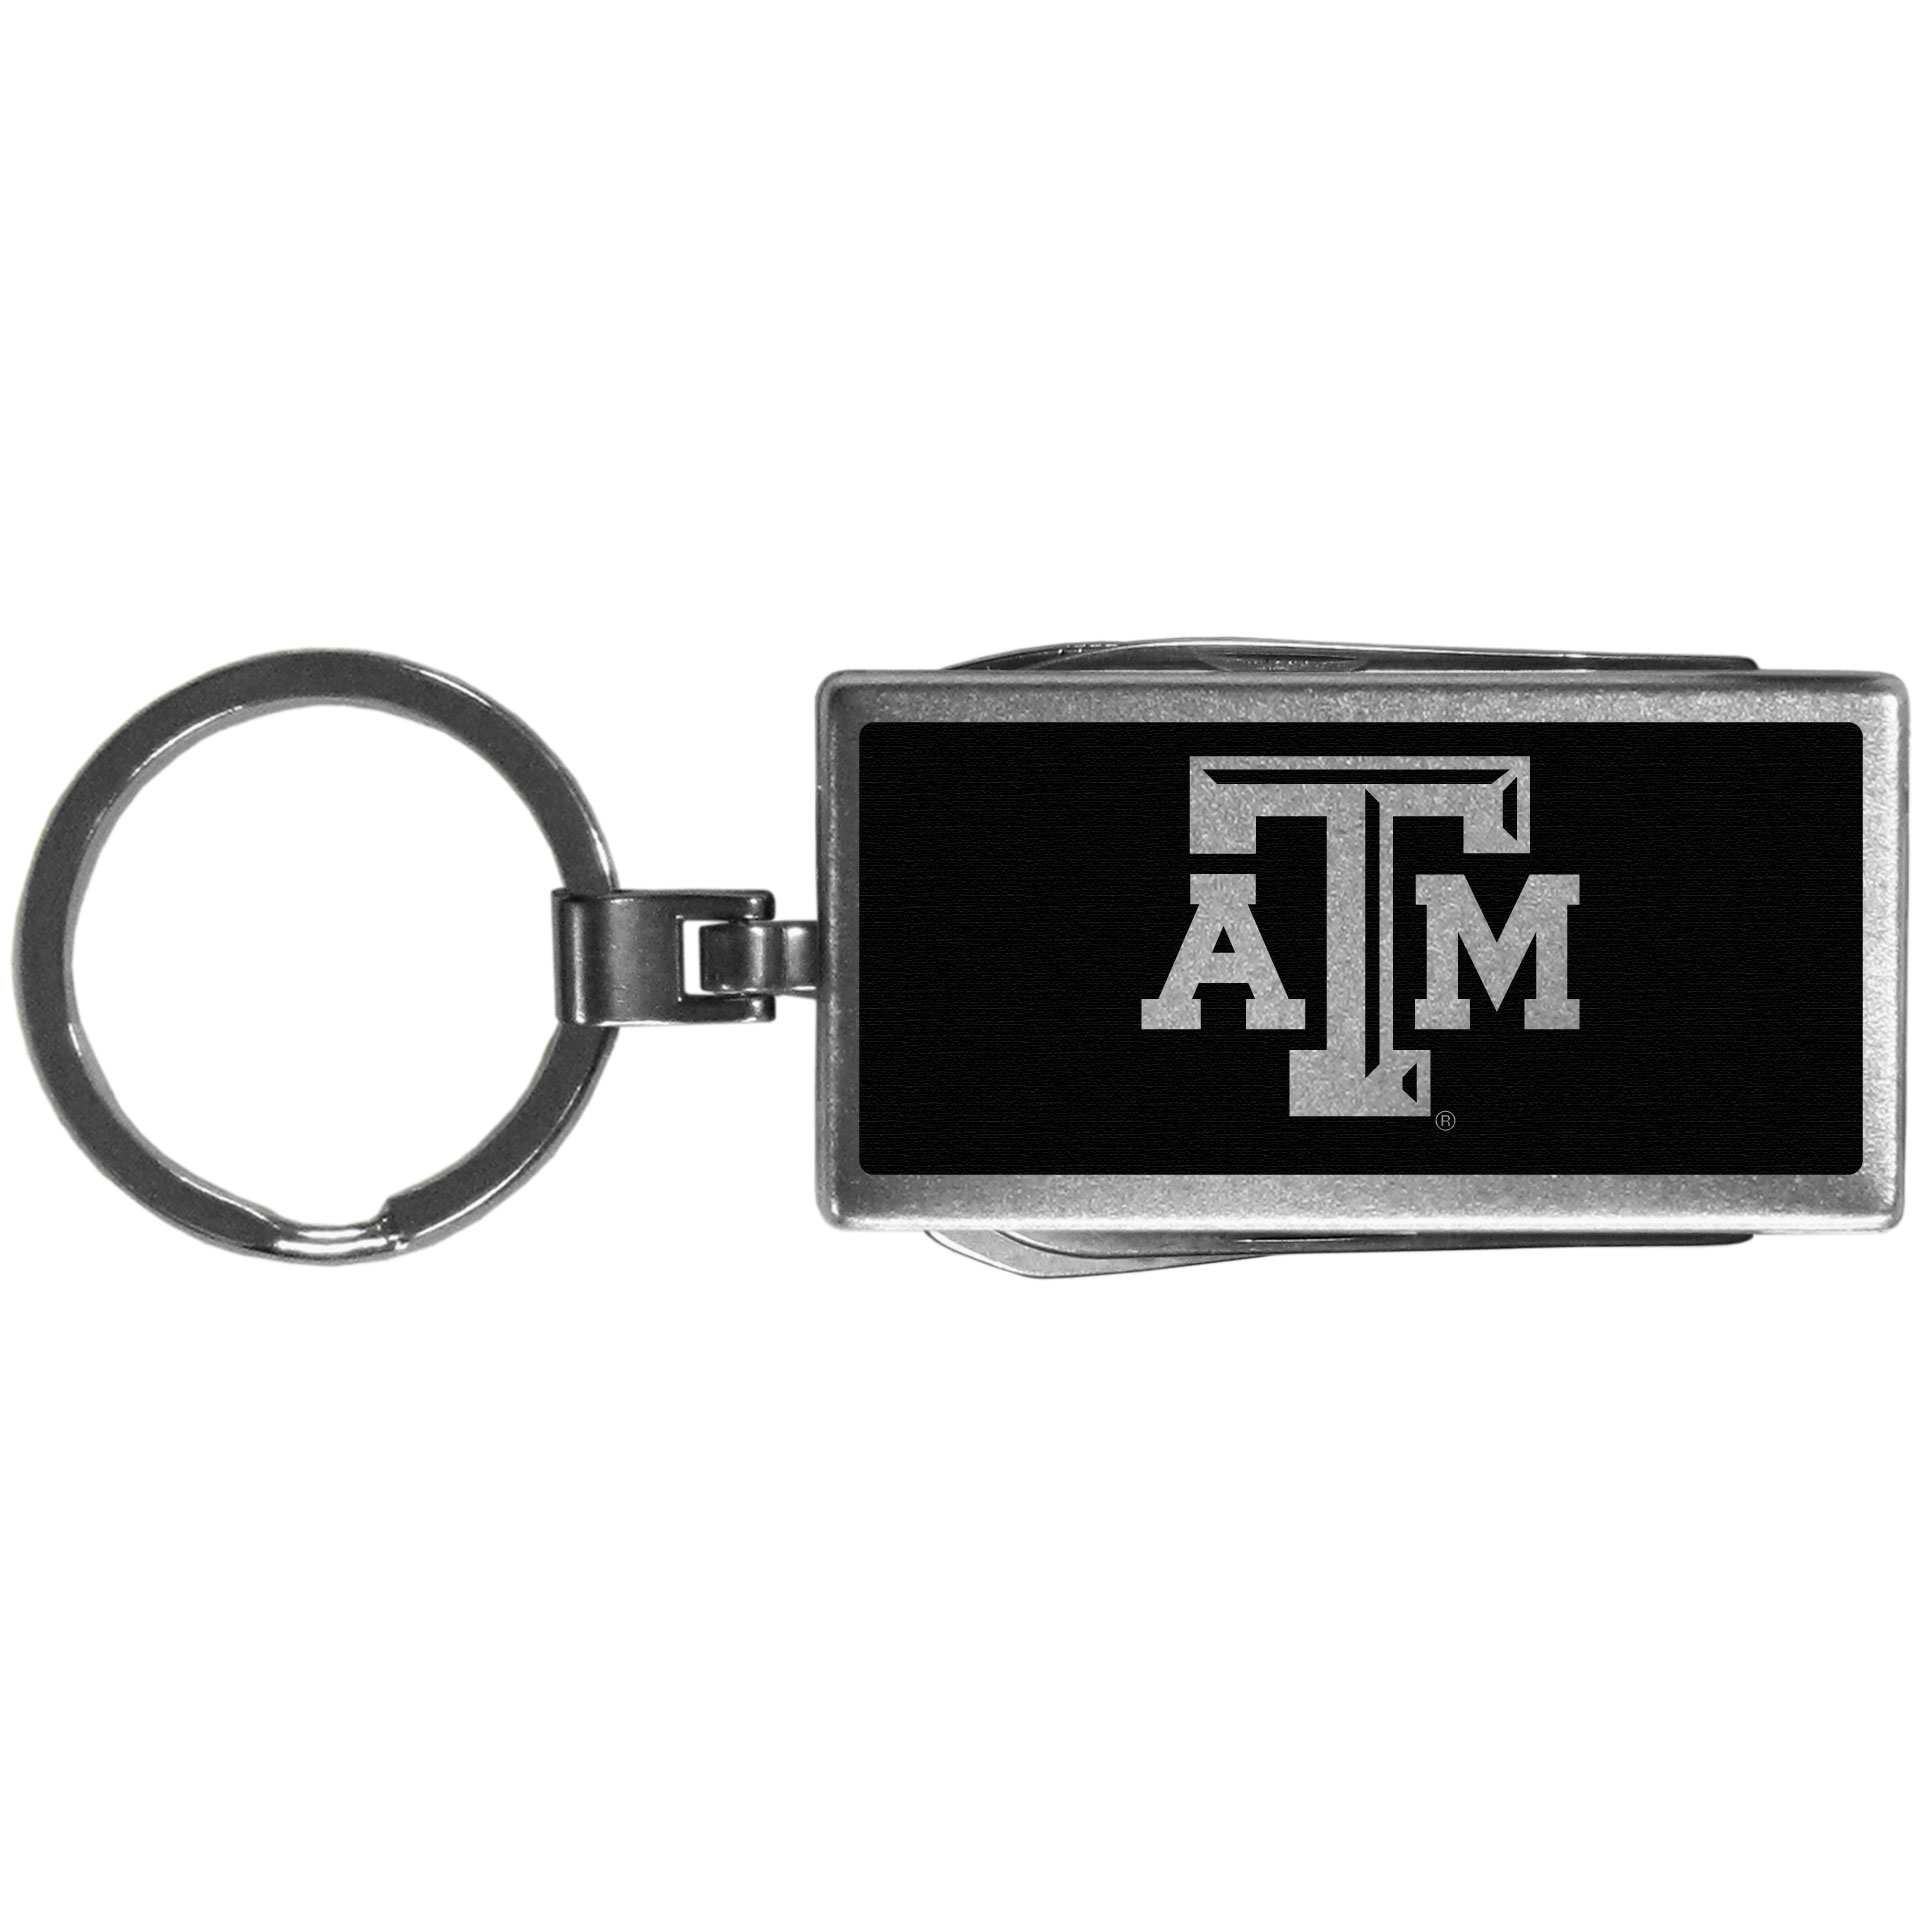 Texas A and M Aggies Multi-tool Key Chain, Black - Be the hero at the tailgate, camping, or on a Friday night with your Texas A & M Aggies Multi-Tool Keychain which comes complete with bottle opener, scissors, knife, nail file and screw driver. Be it opening a package or a beverage Siskiyou's Multi-Tool Keychain goes wherever your keys do. The keychain hangs at 4 inches long when closed.